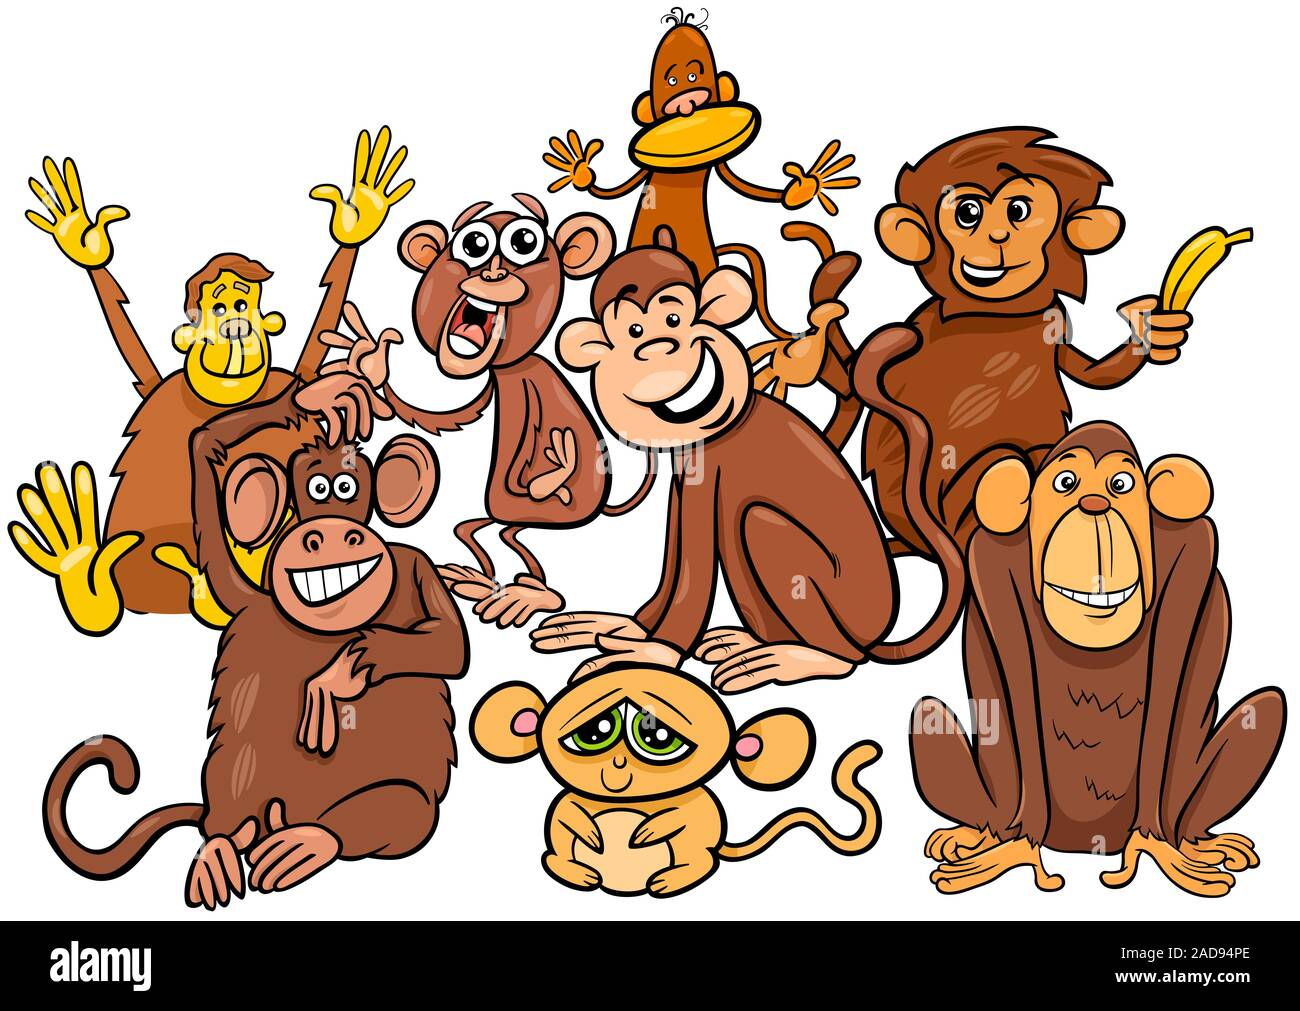 Baboon Cartoon High Resolution Stock Photography And Images Alamy Baboon cartoon character illustrations & vectors. https www alamy com happy monkey cartoon characters group image335188854 html